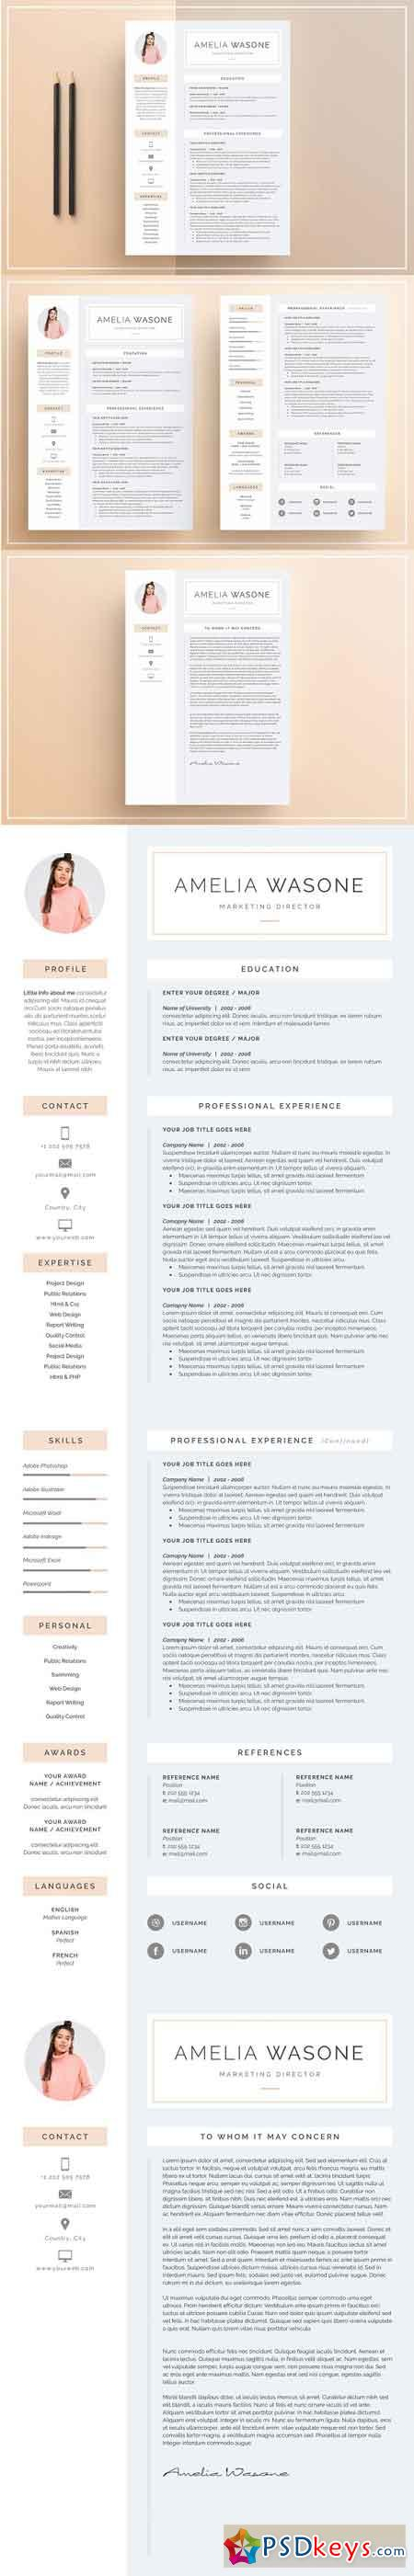 word resume  u0026 cover letter template 1173571  u00bb free download photoshop vector stock image via